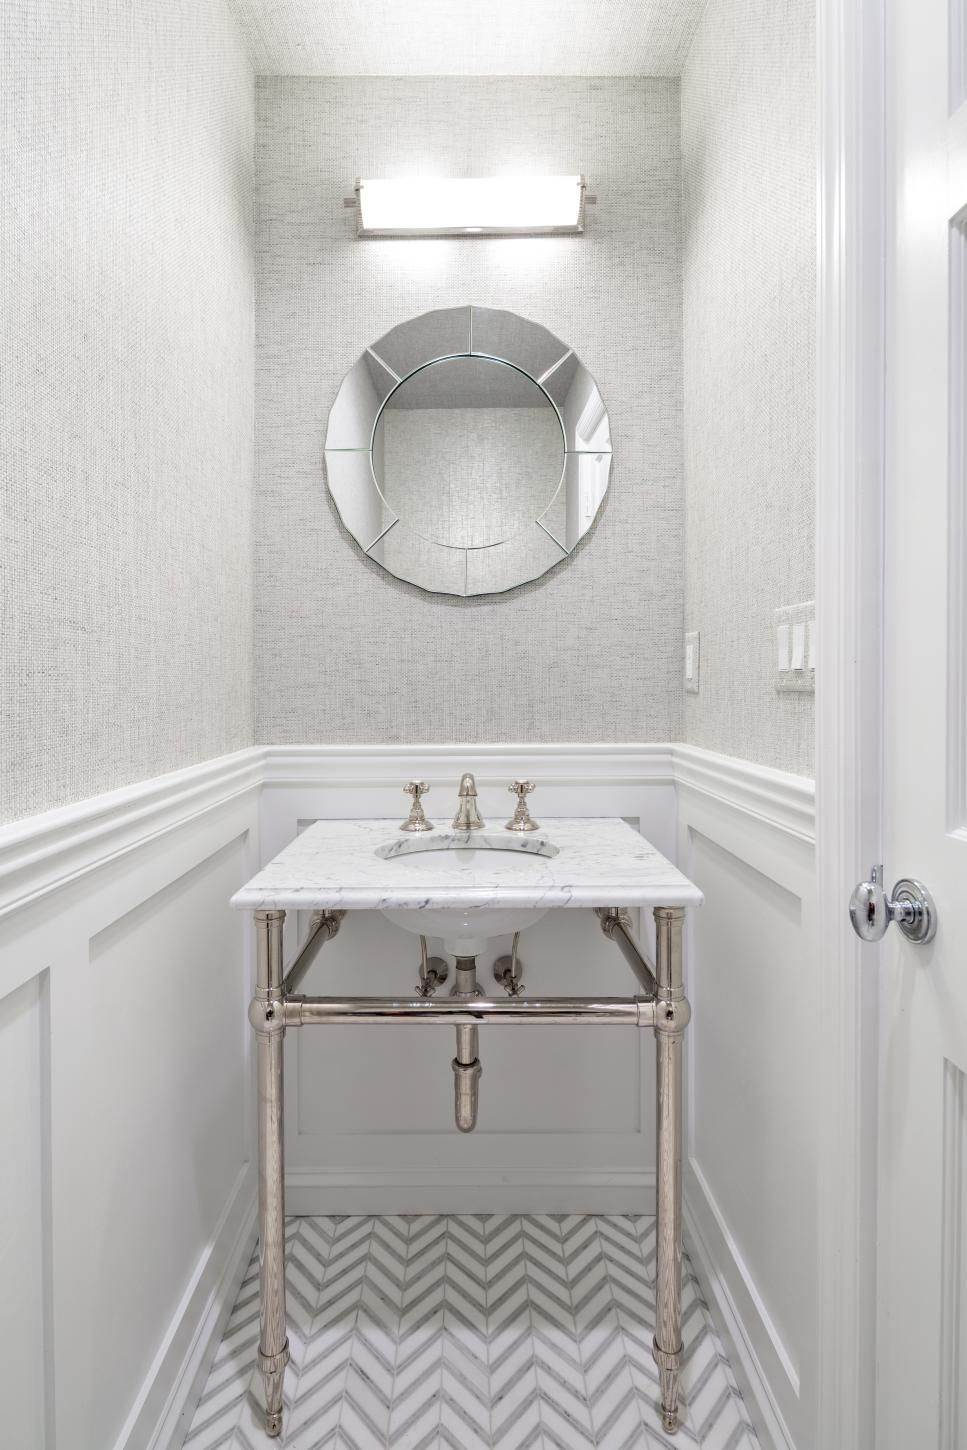 Learn Where to Splurge and Where to Save for a Beautiful Bathroom ...